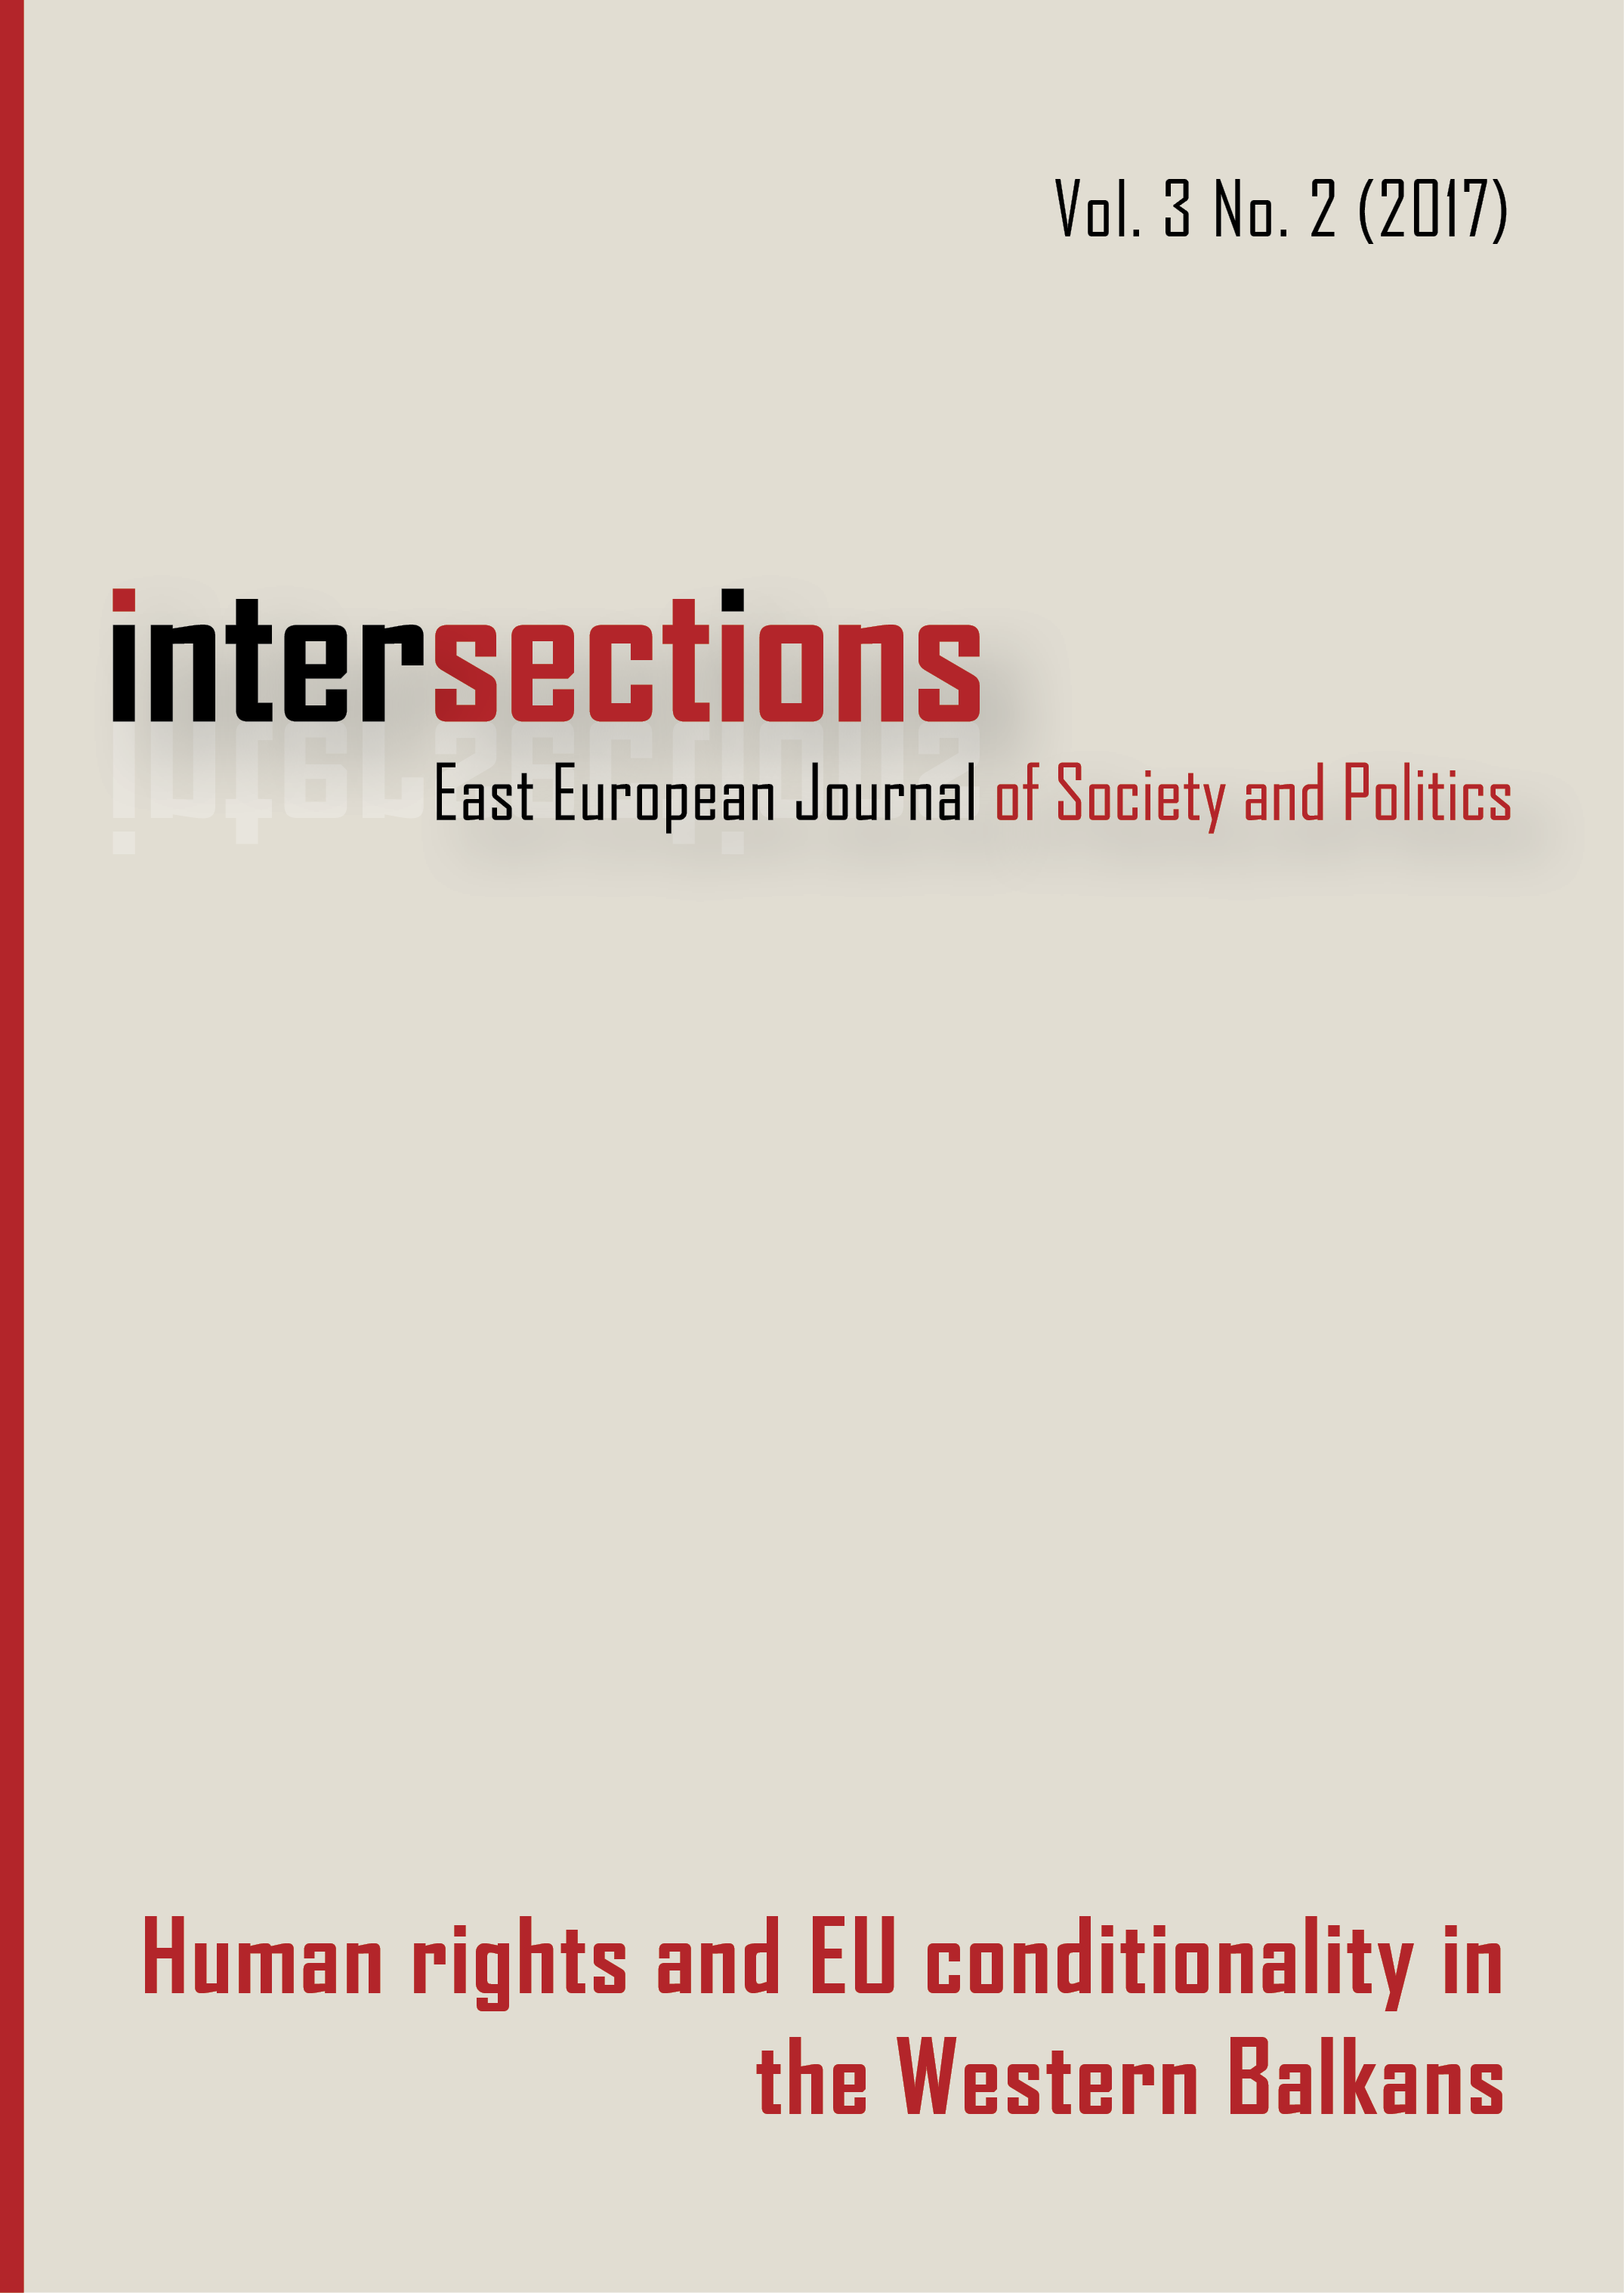 View Vol. 3 No. 2 (2017): Human Rights and EU Conditionality in the Western Balkans